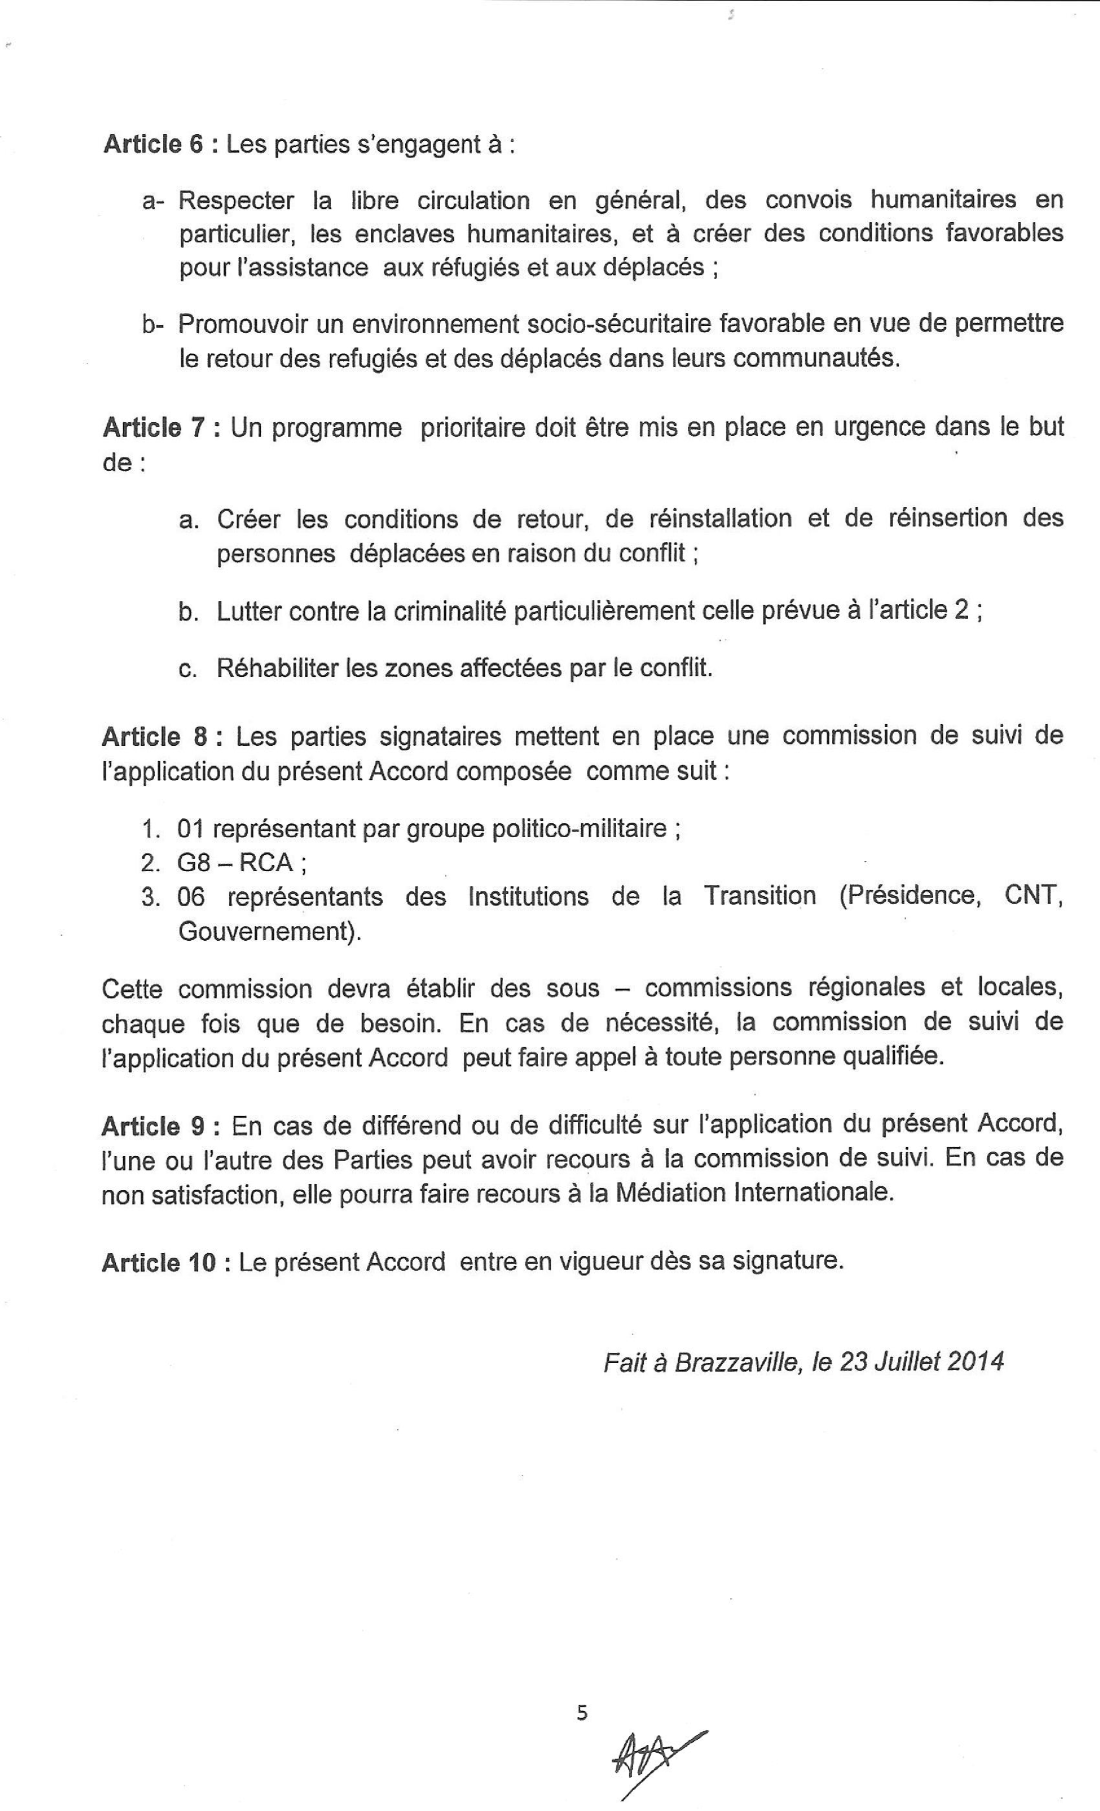 accord-cessation-hostilite-brazzaville-juillet-2014-seleka-balaka-merged-2222-4